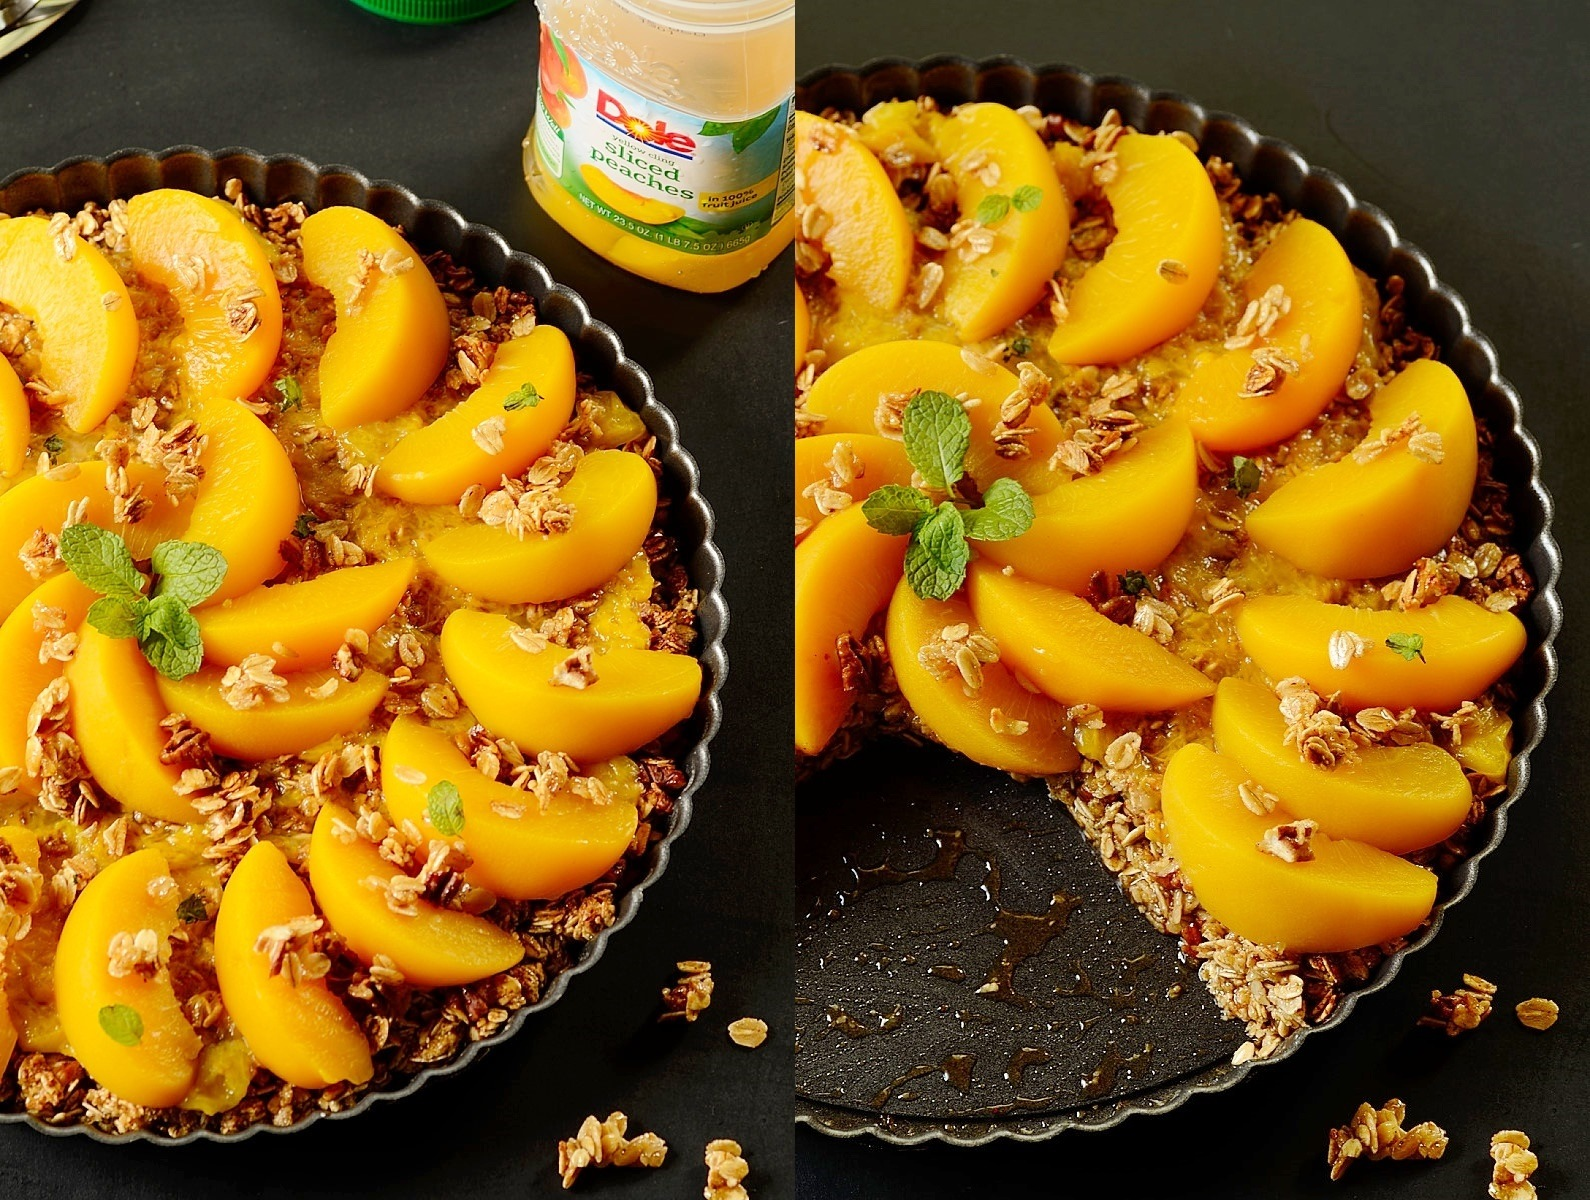 dole-peach-maple-breakfast-pie